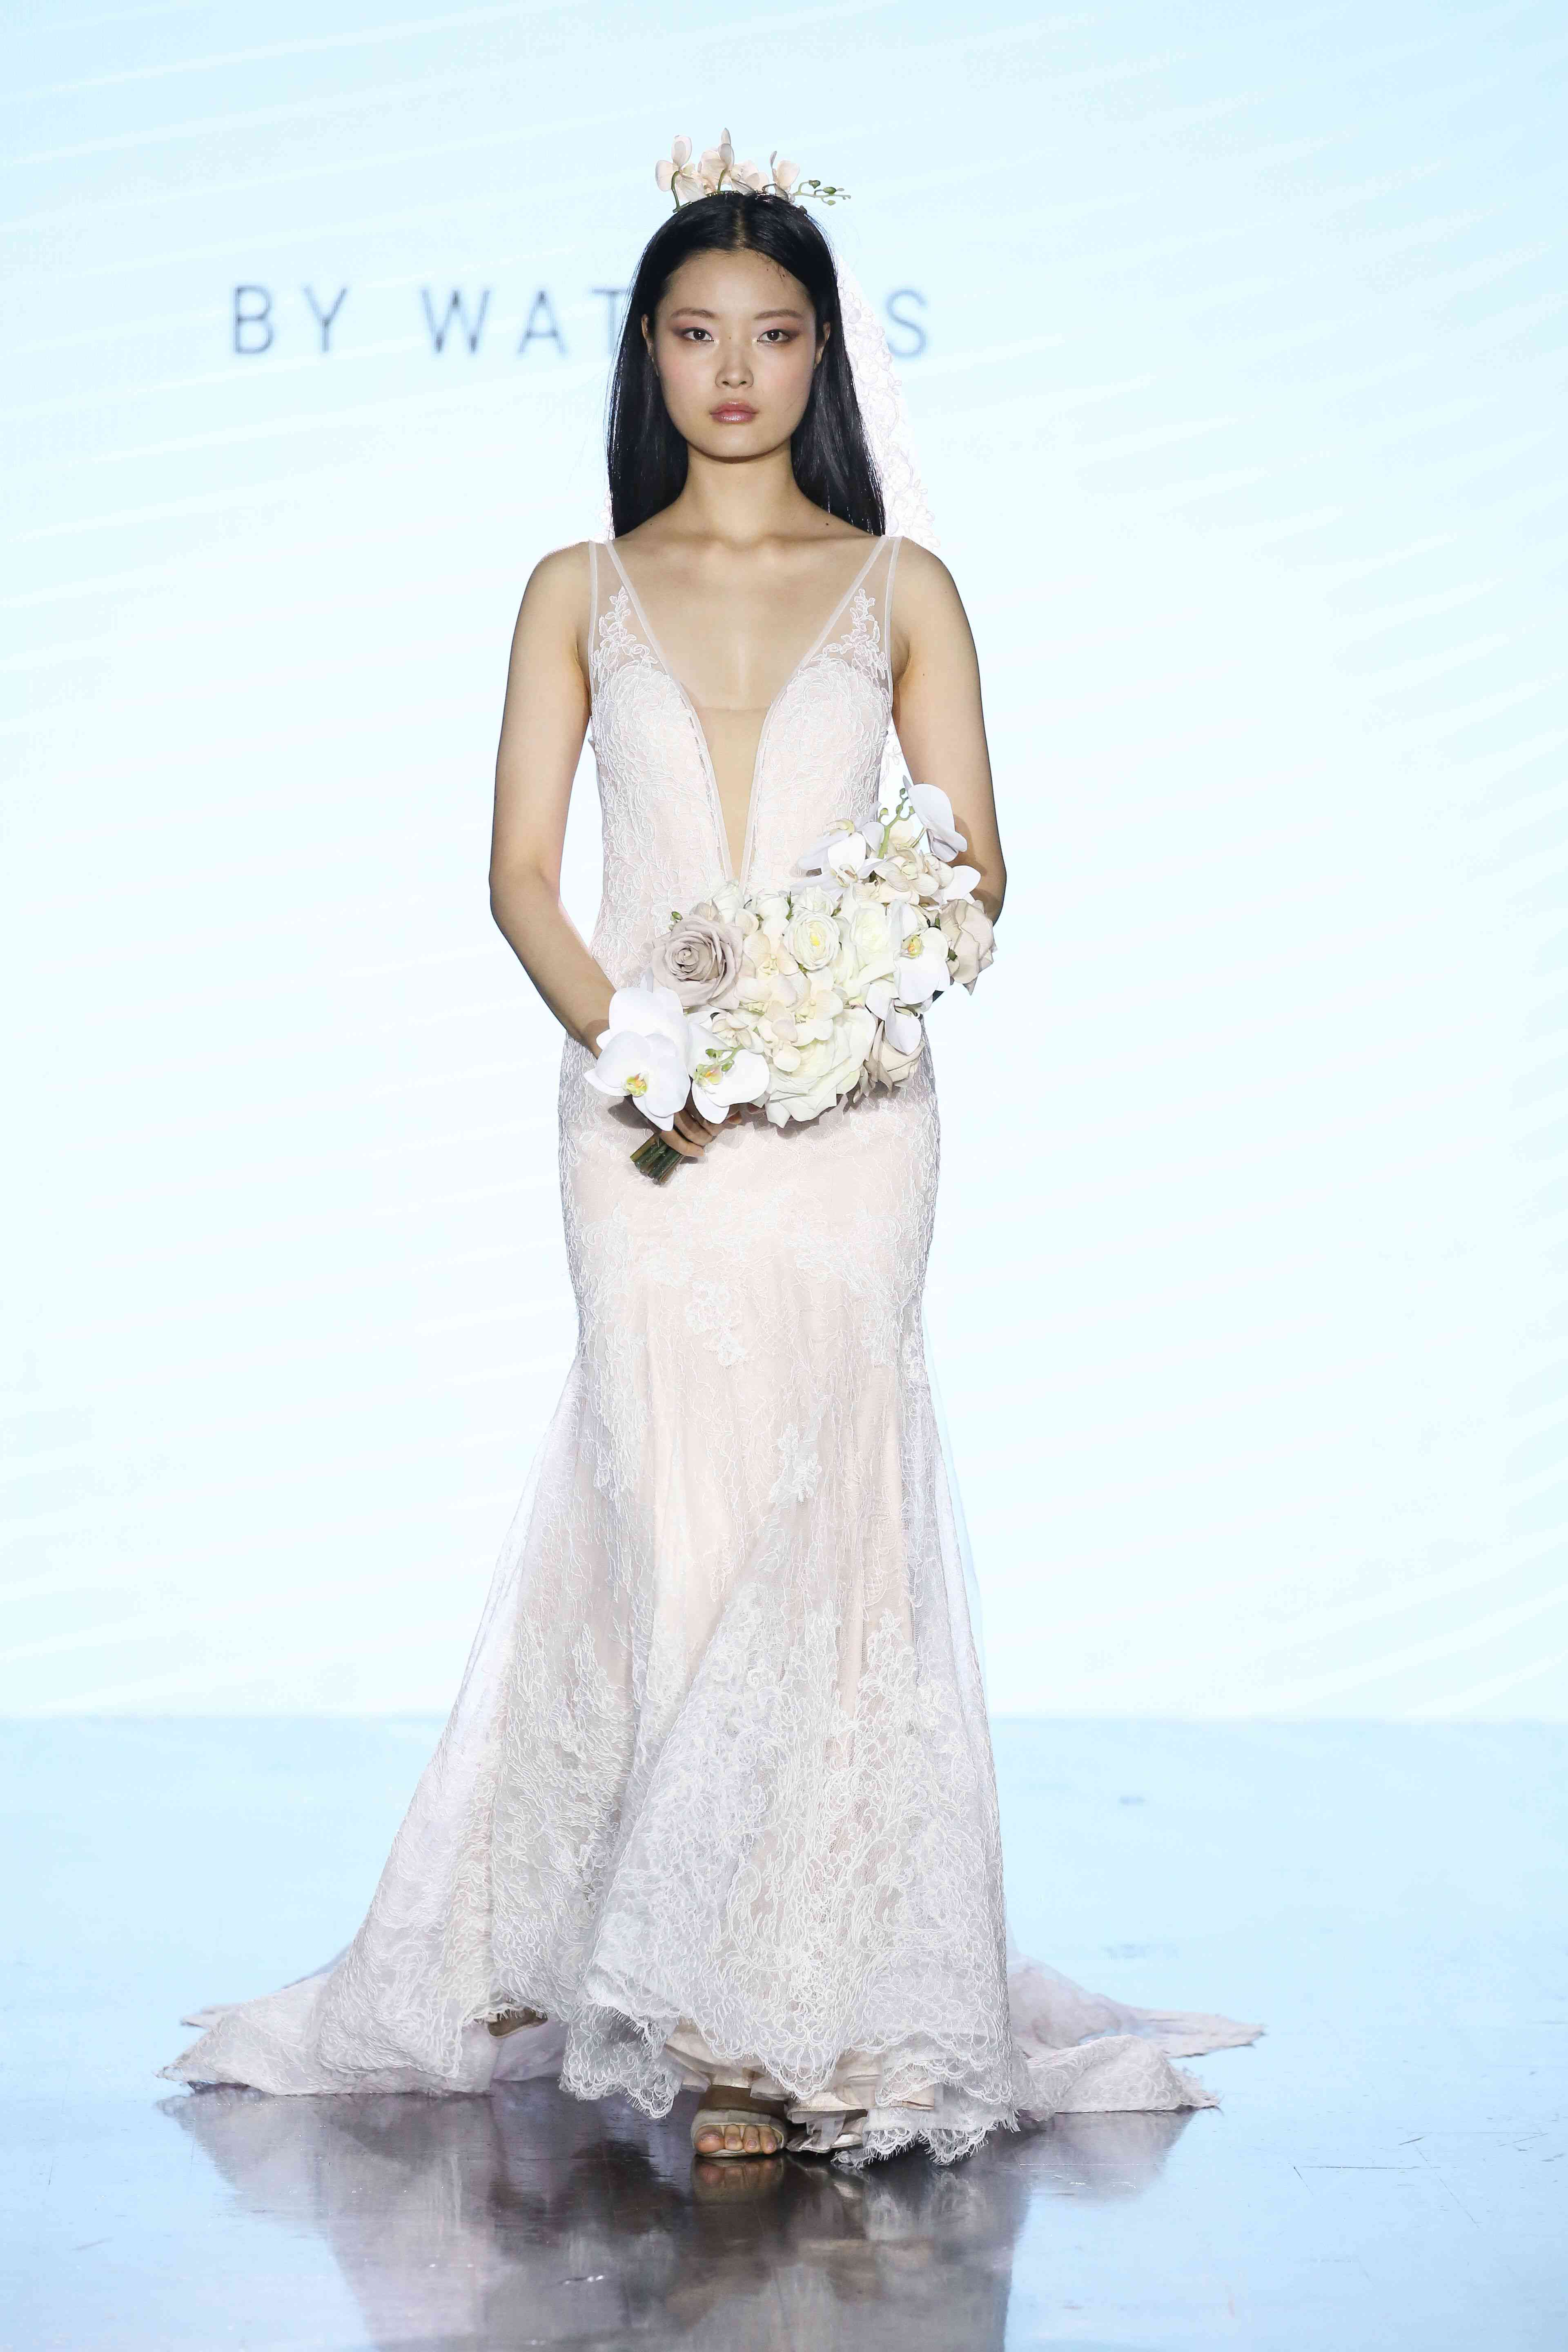 Model in fit-and-flare allover lace wedding dress with plunging illusion neckline